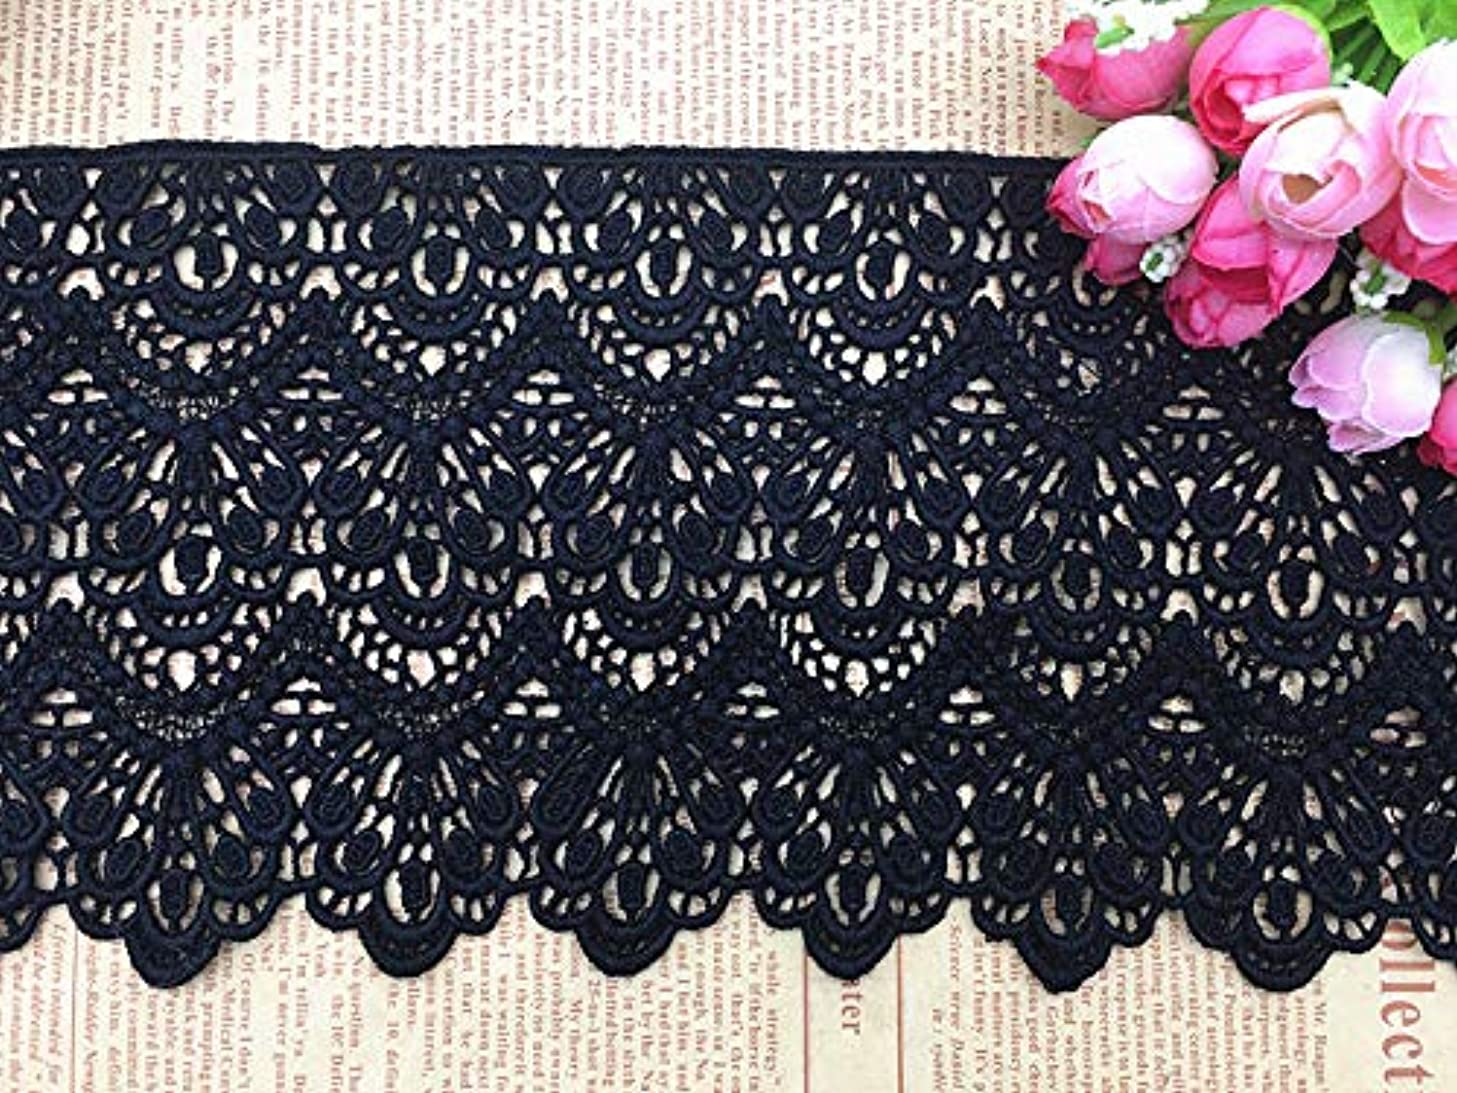 14CM Width Europe Long Pattern Inelastic Embroidery Lace Trim,Curtain Tablecloth Slipcover Bridal DIY Clothing/Accessories.(2 Yards in one Package) (Black)